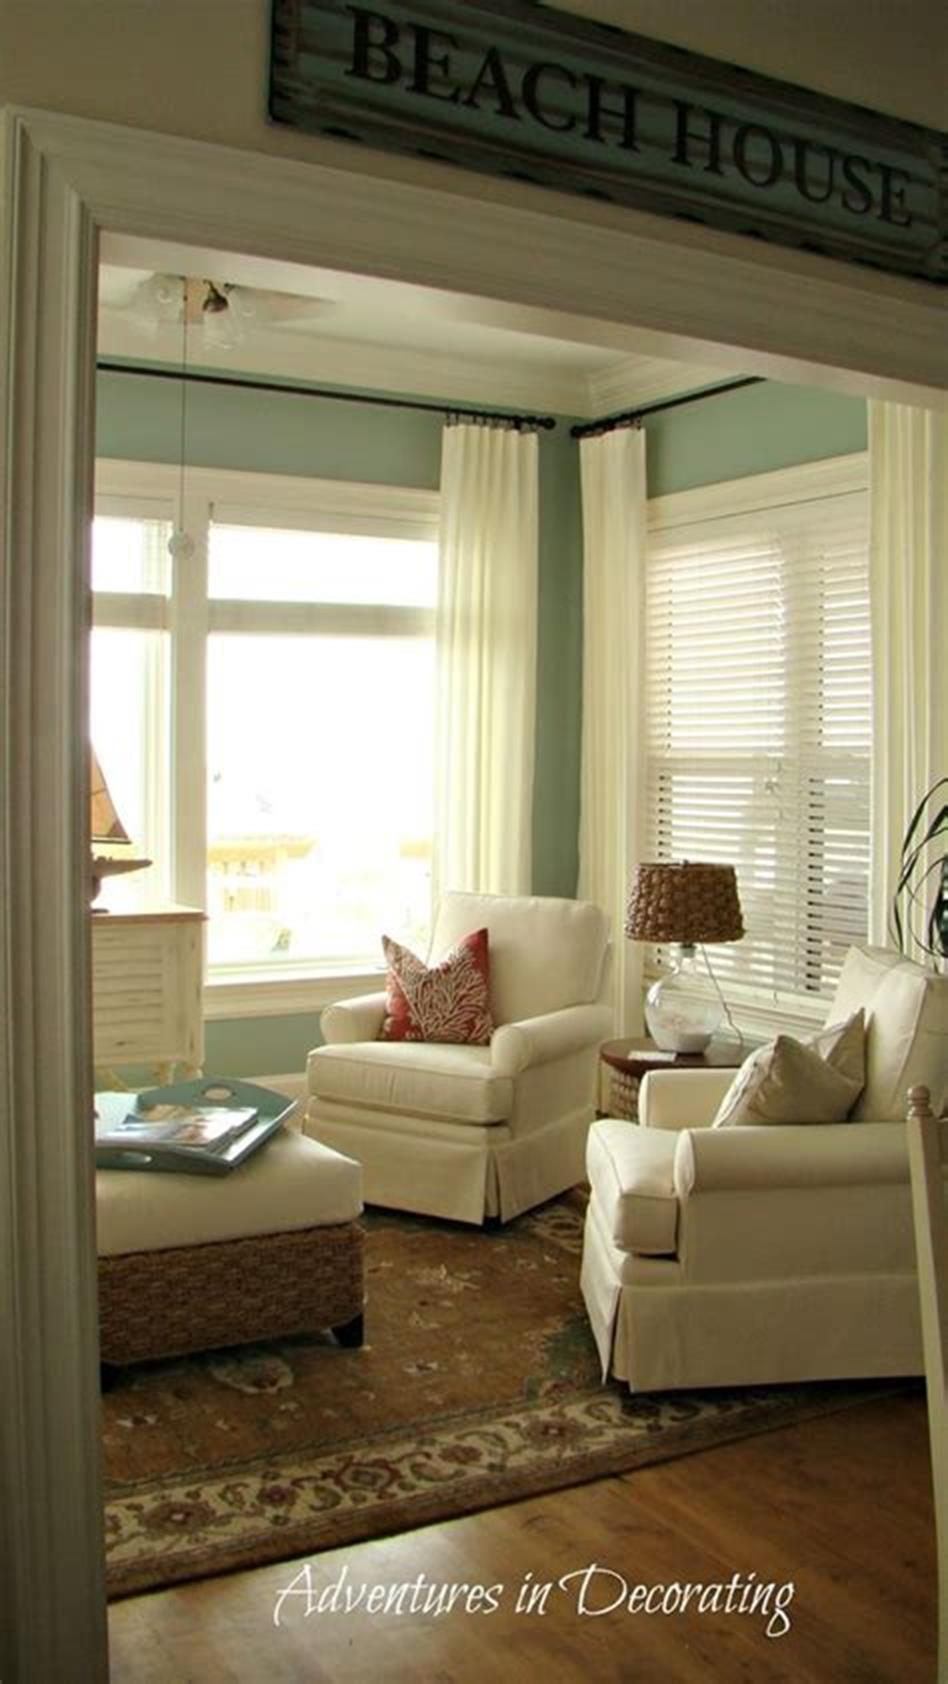 50 Most Popular Affordable Sunroom Design Ideas on a Budget 55